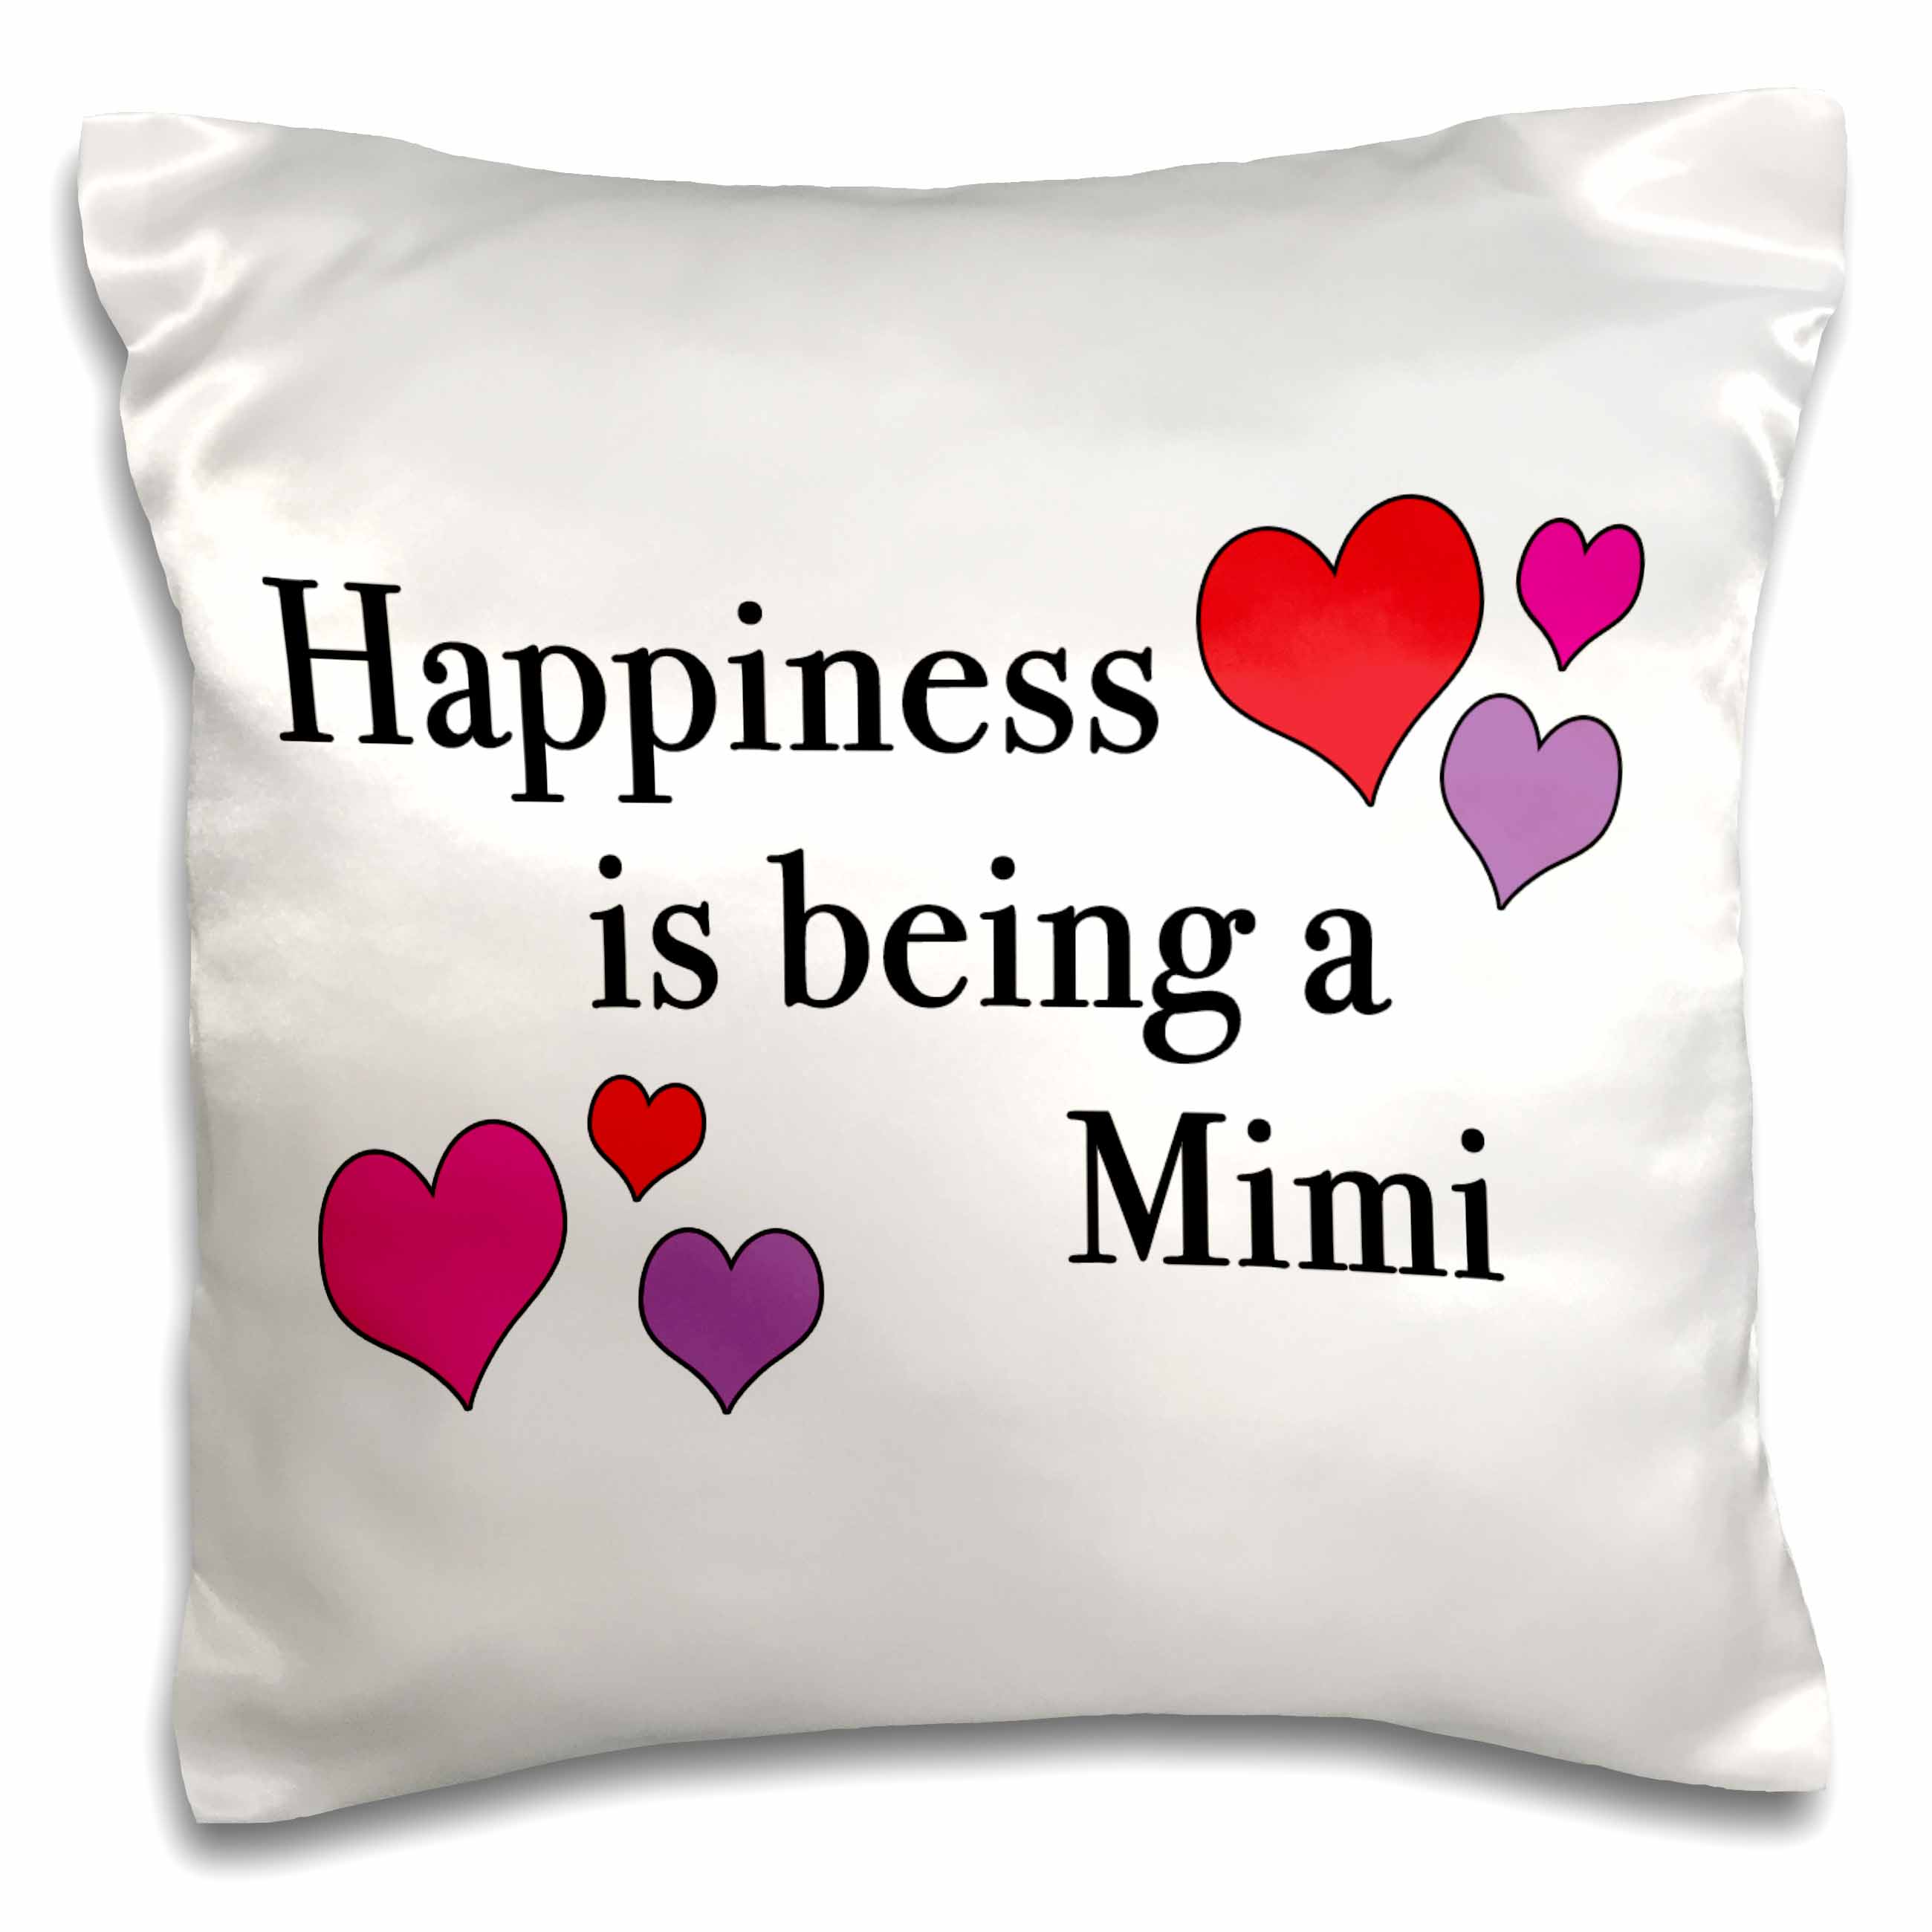 3dRose Happiness Is Being A Mimi, Pillow Case, 16 by 16-inch